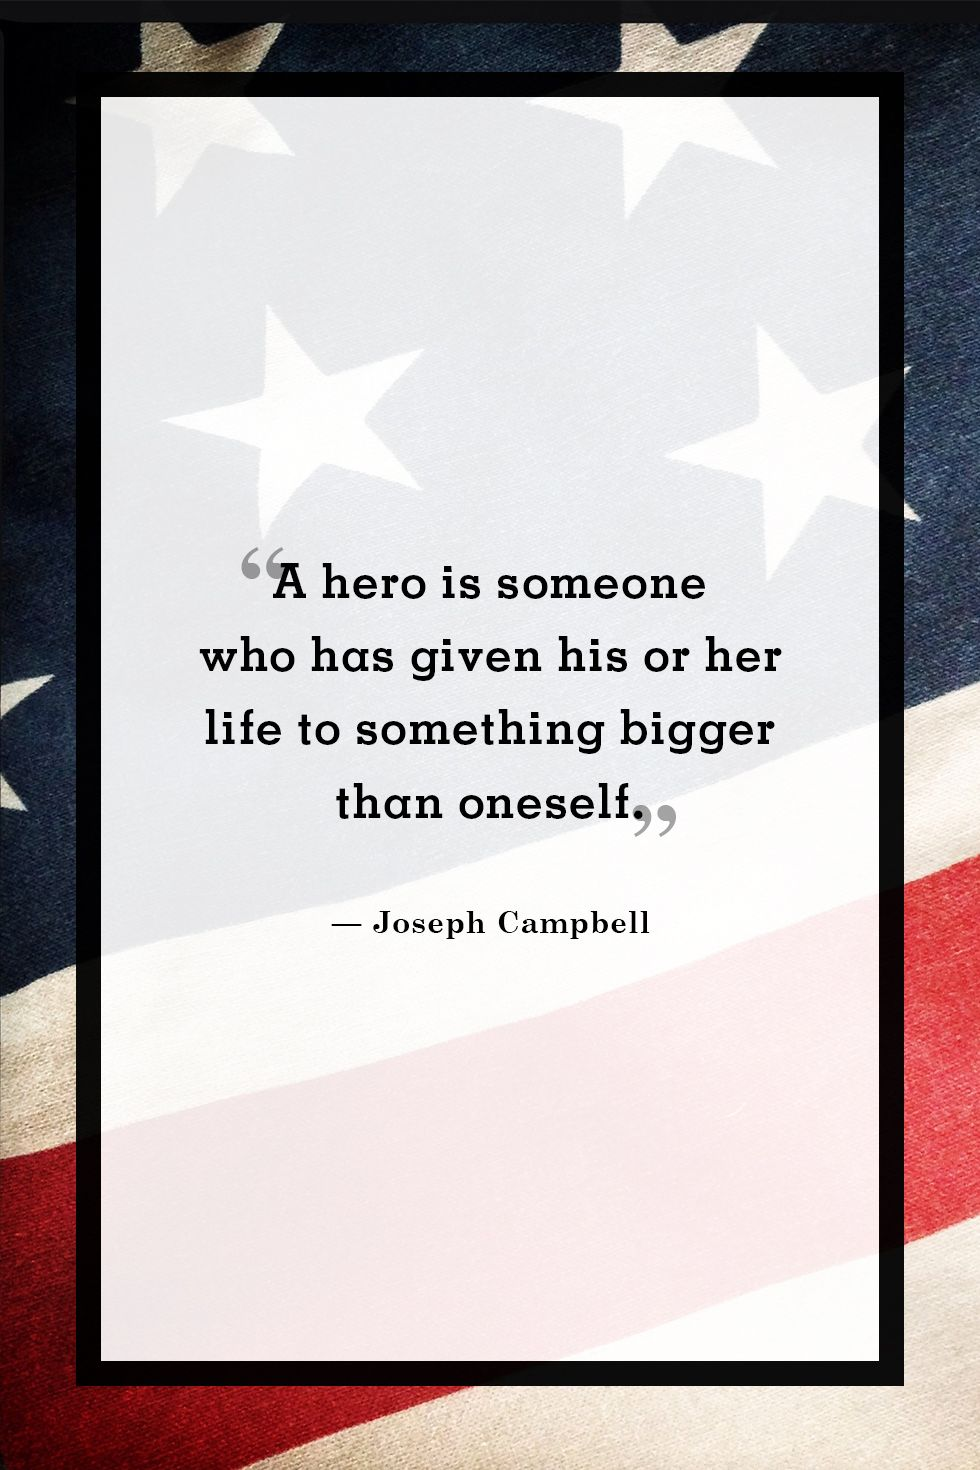 Fallen Soldier Quotes Glamorous 10 Famous Memorial Day Quotes That Honor America's Fallen Heroes